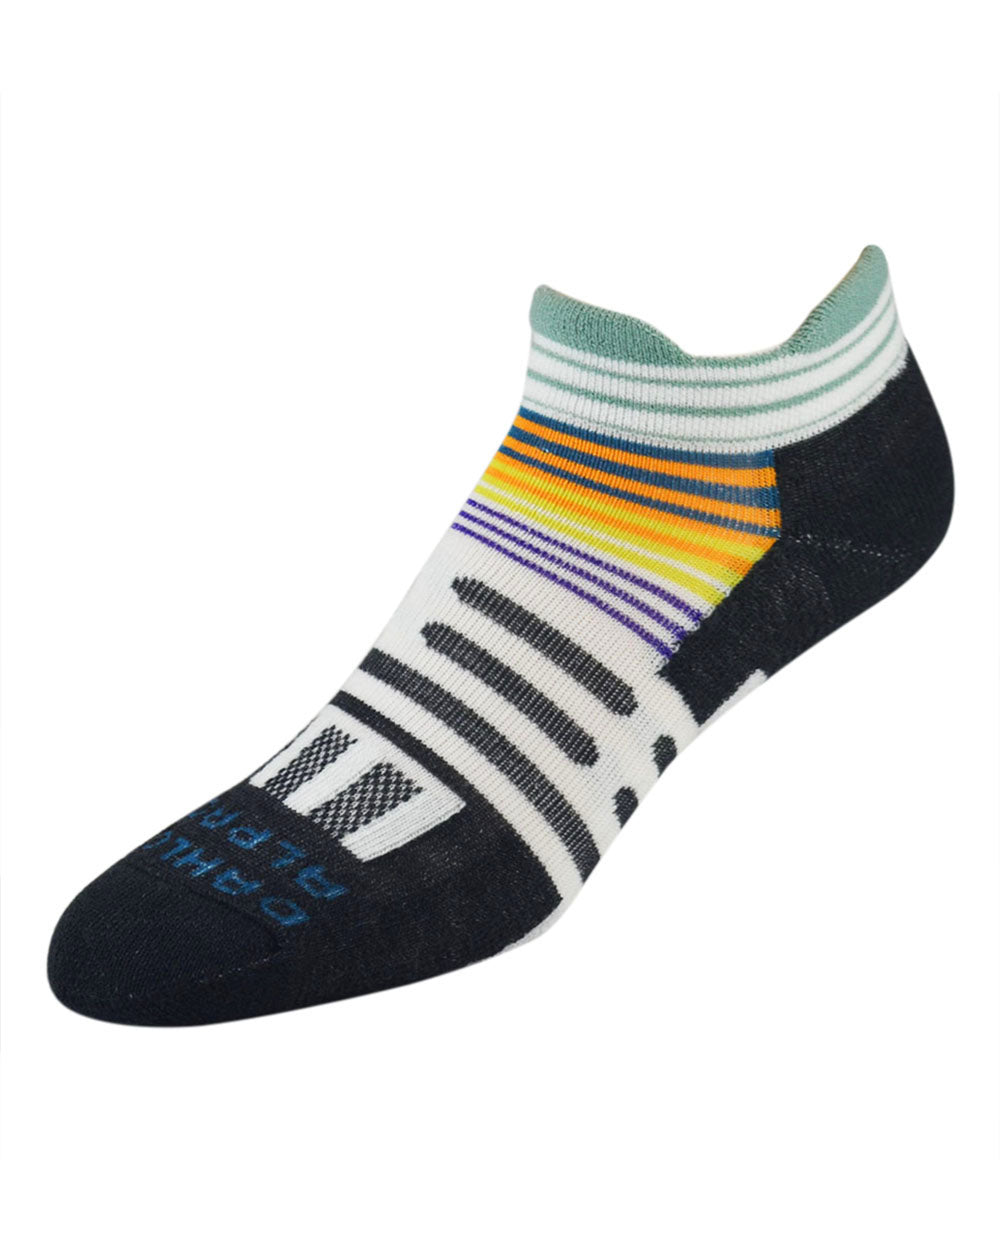 Partner Spotlight: What Makes a Dahlgren Sock so Special?